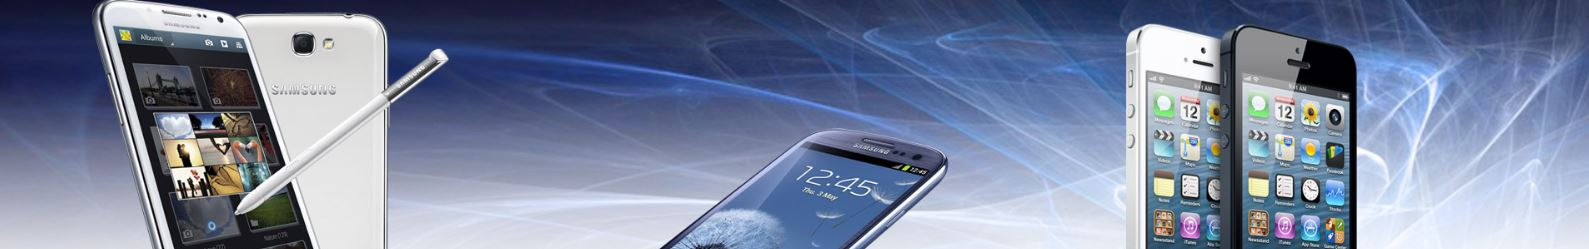 MOBILE PHONE BANNER